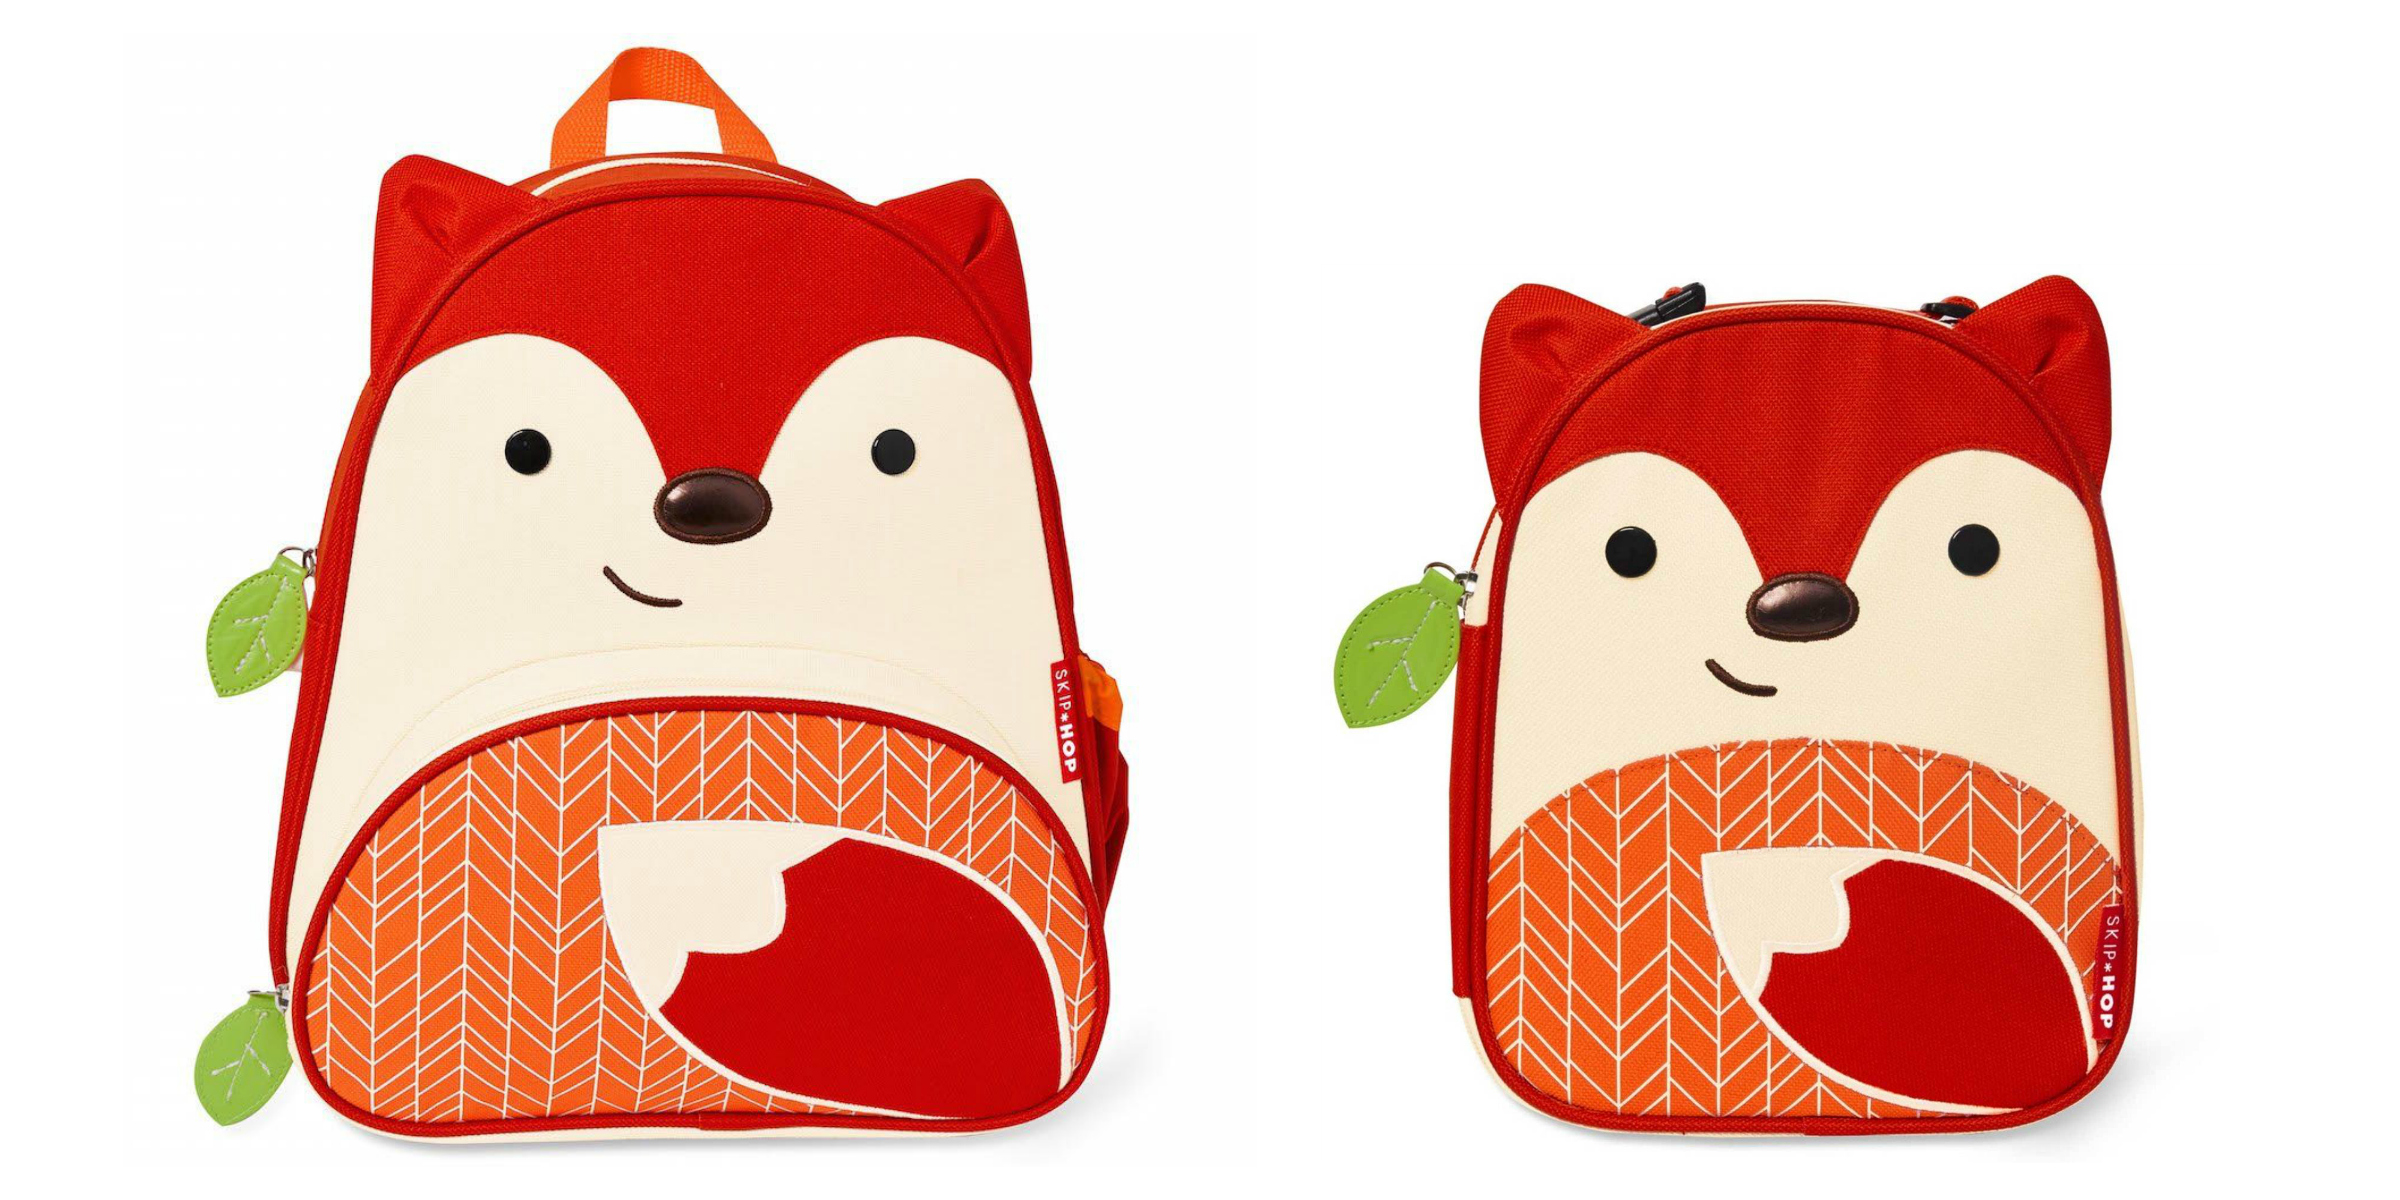 Skip Hop Fox Backpack | Skip Hop Fox Lunch Box | Back To School Bags for Kids